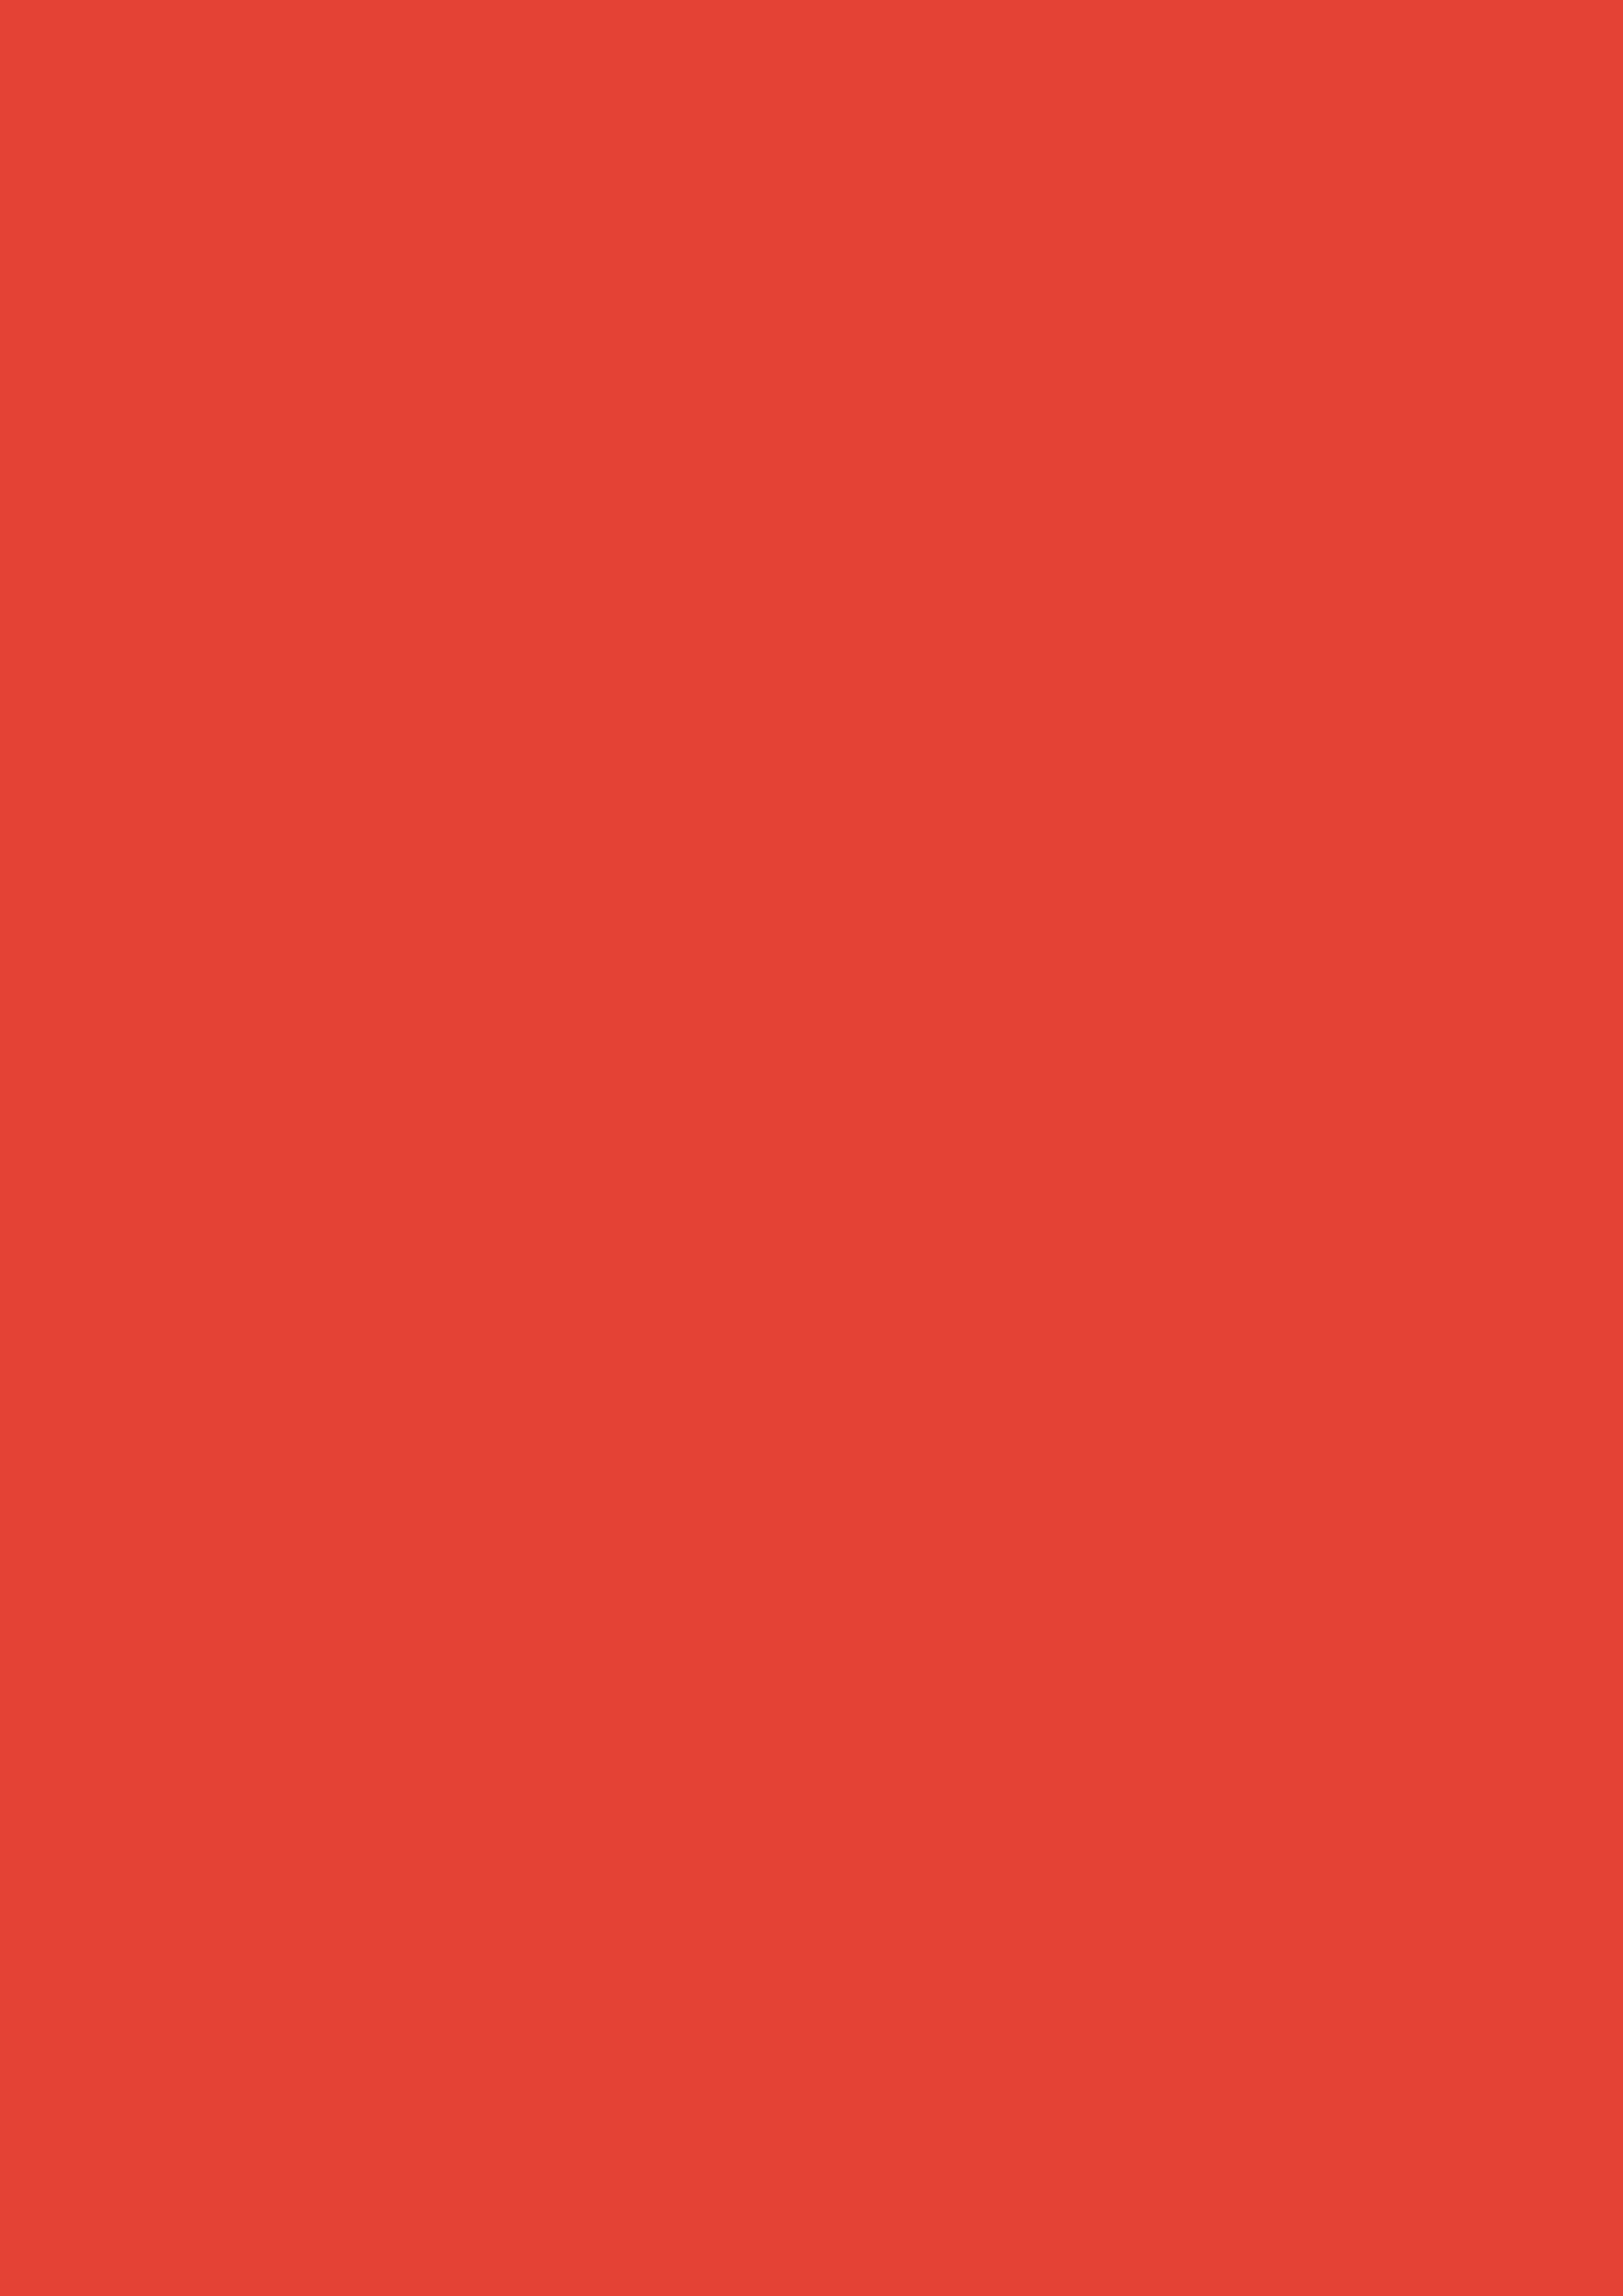 2480x3508 Cinnabar Solid Color Background